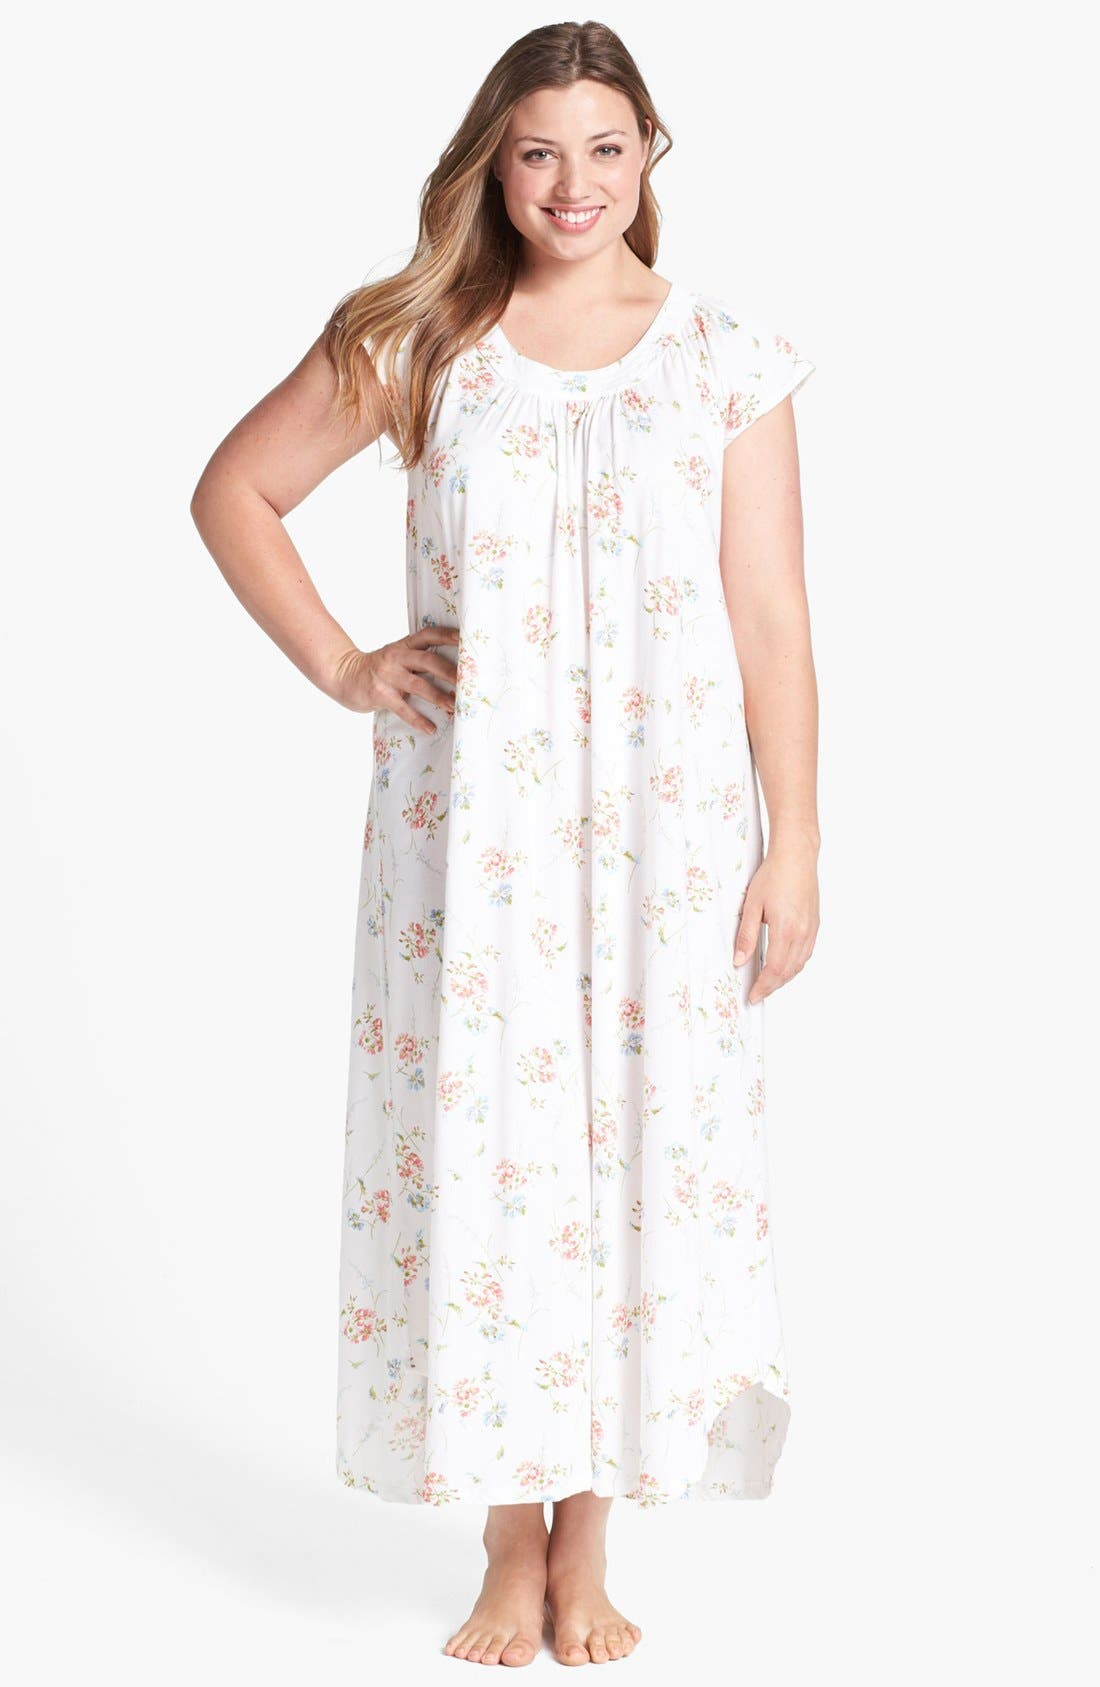 Main Image - Carole Hochman Designs 'Garden Delights' Nightgown (Plus Size)